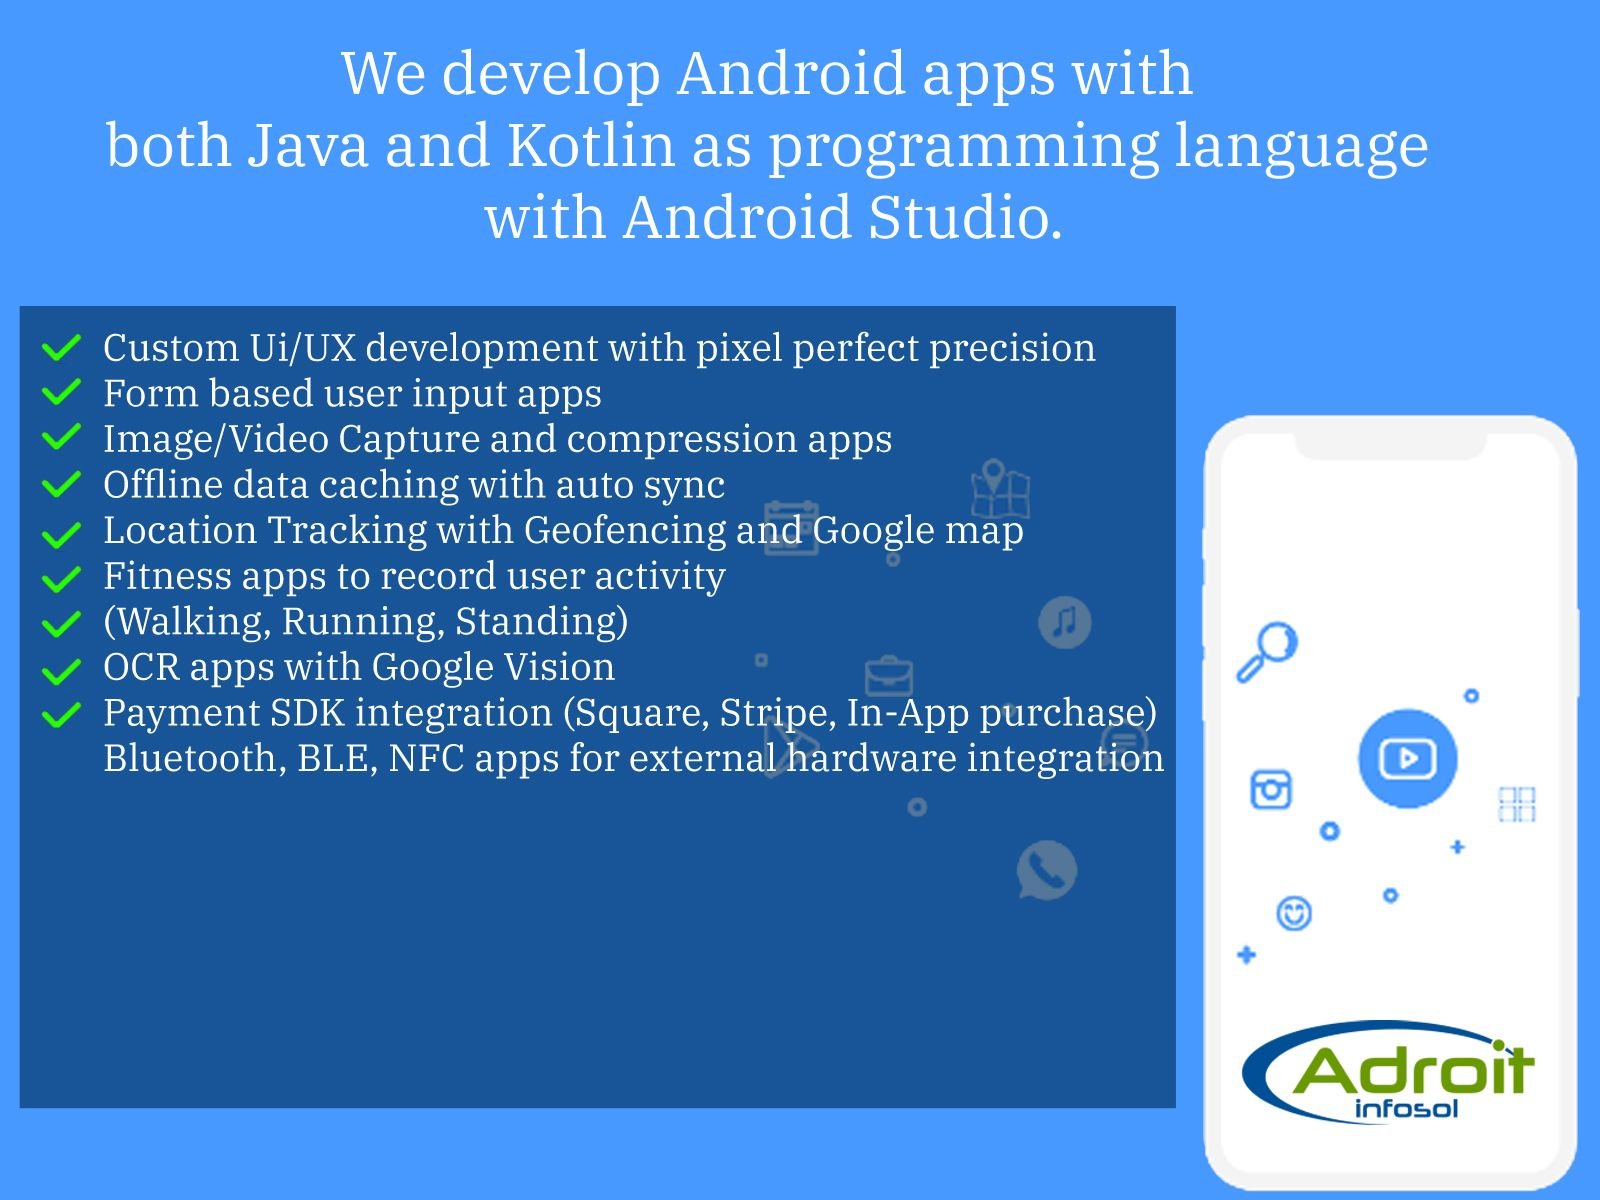 We develop Android apps with both Java and Kotlin as